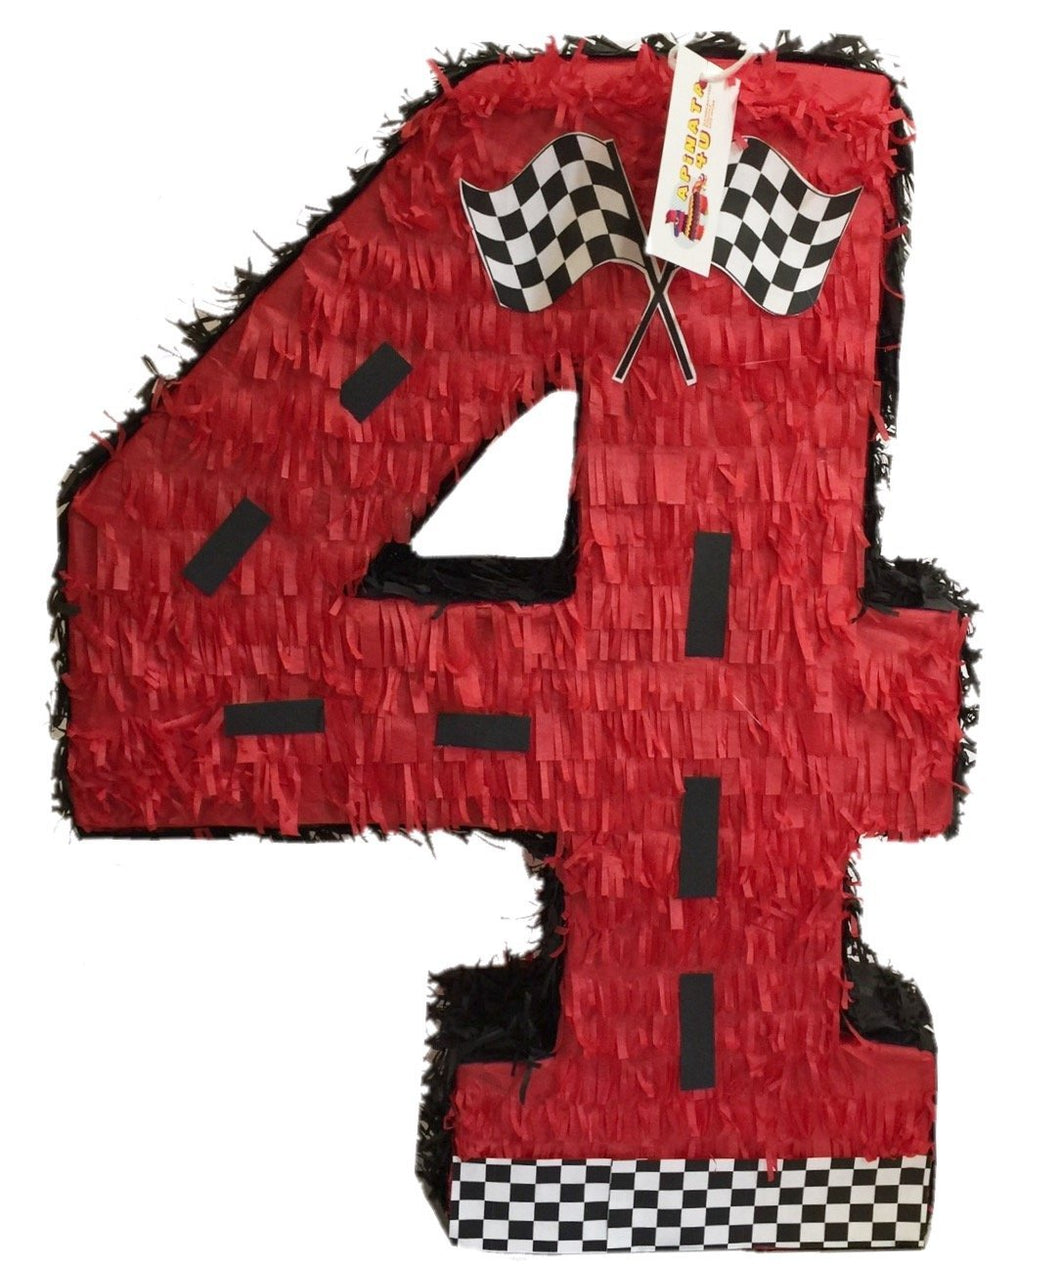 APINATA4U Large Red Number Four Racing Theme Pinata